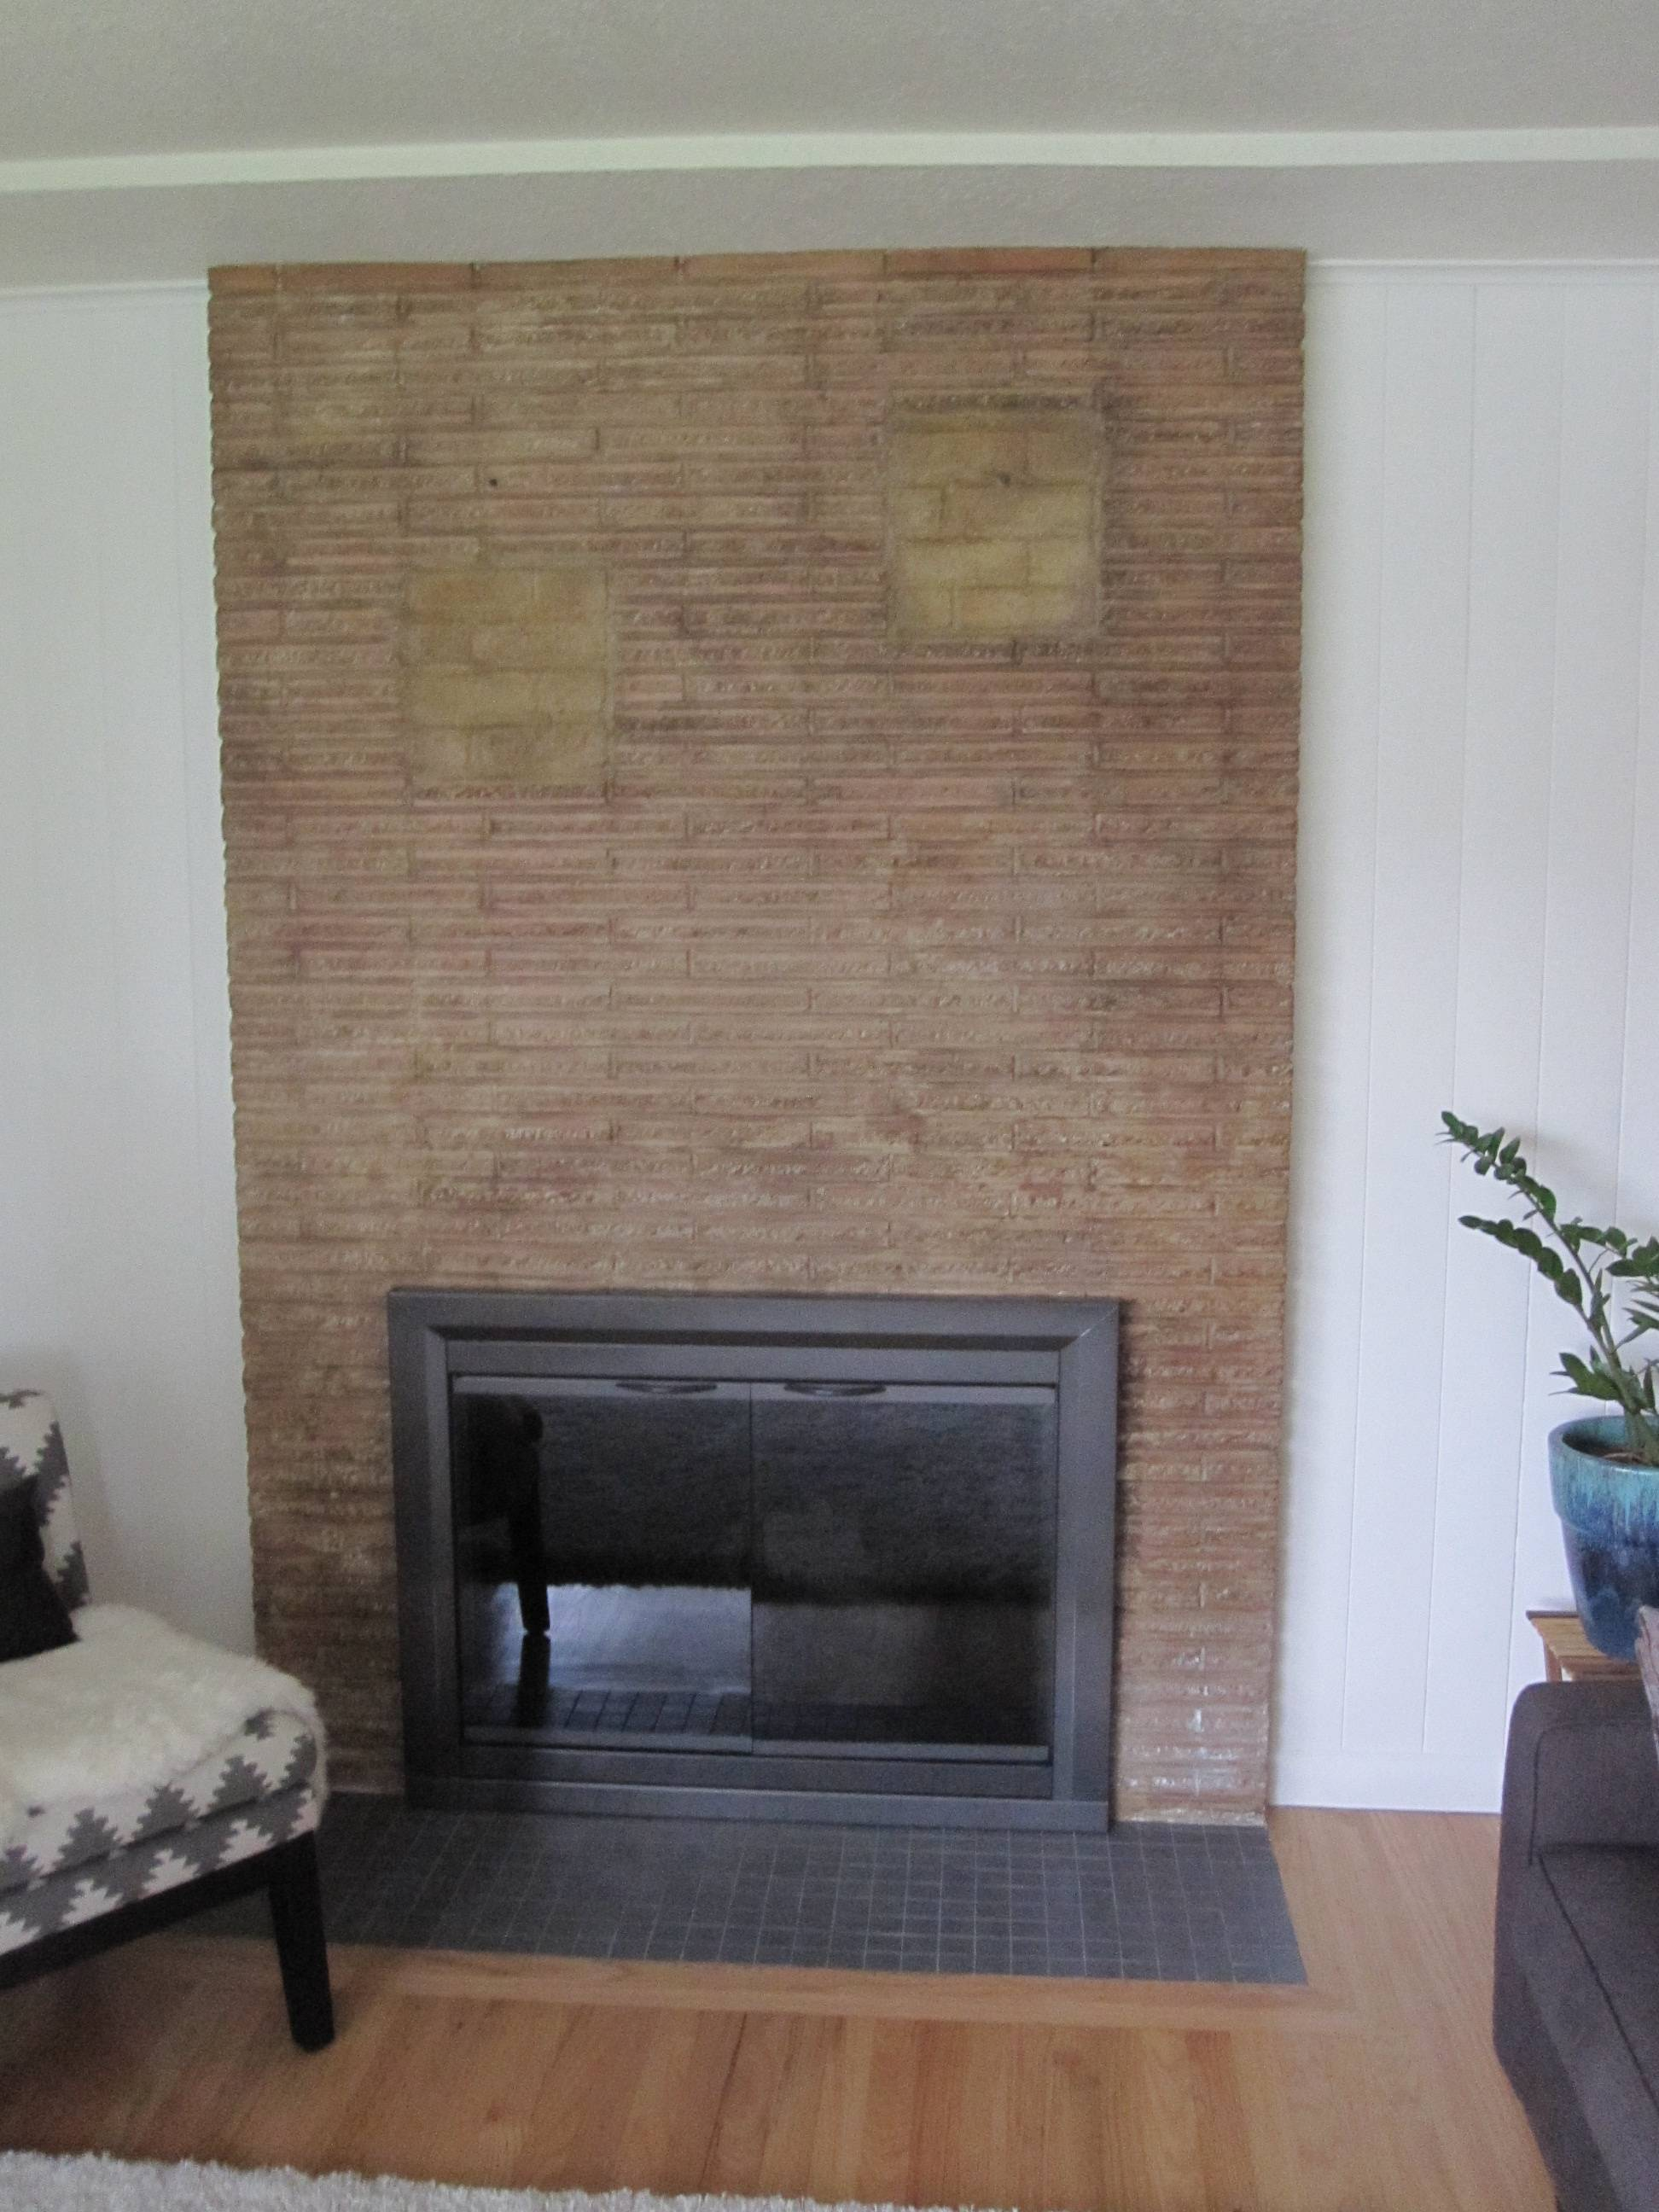 Previous Owner Filled In Fireplace Shelves With Incorrect